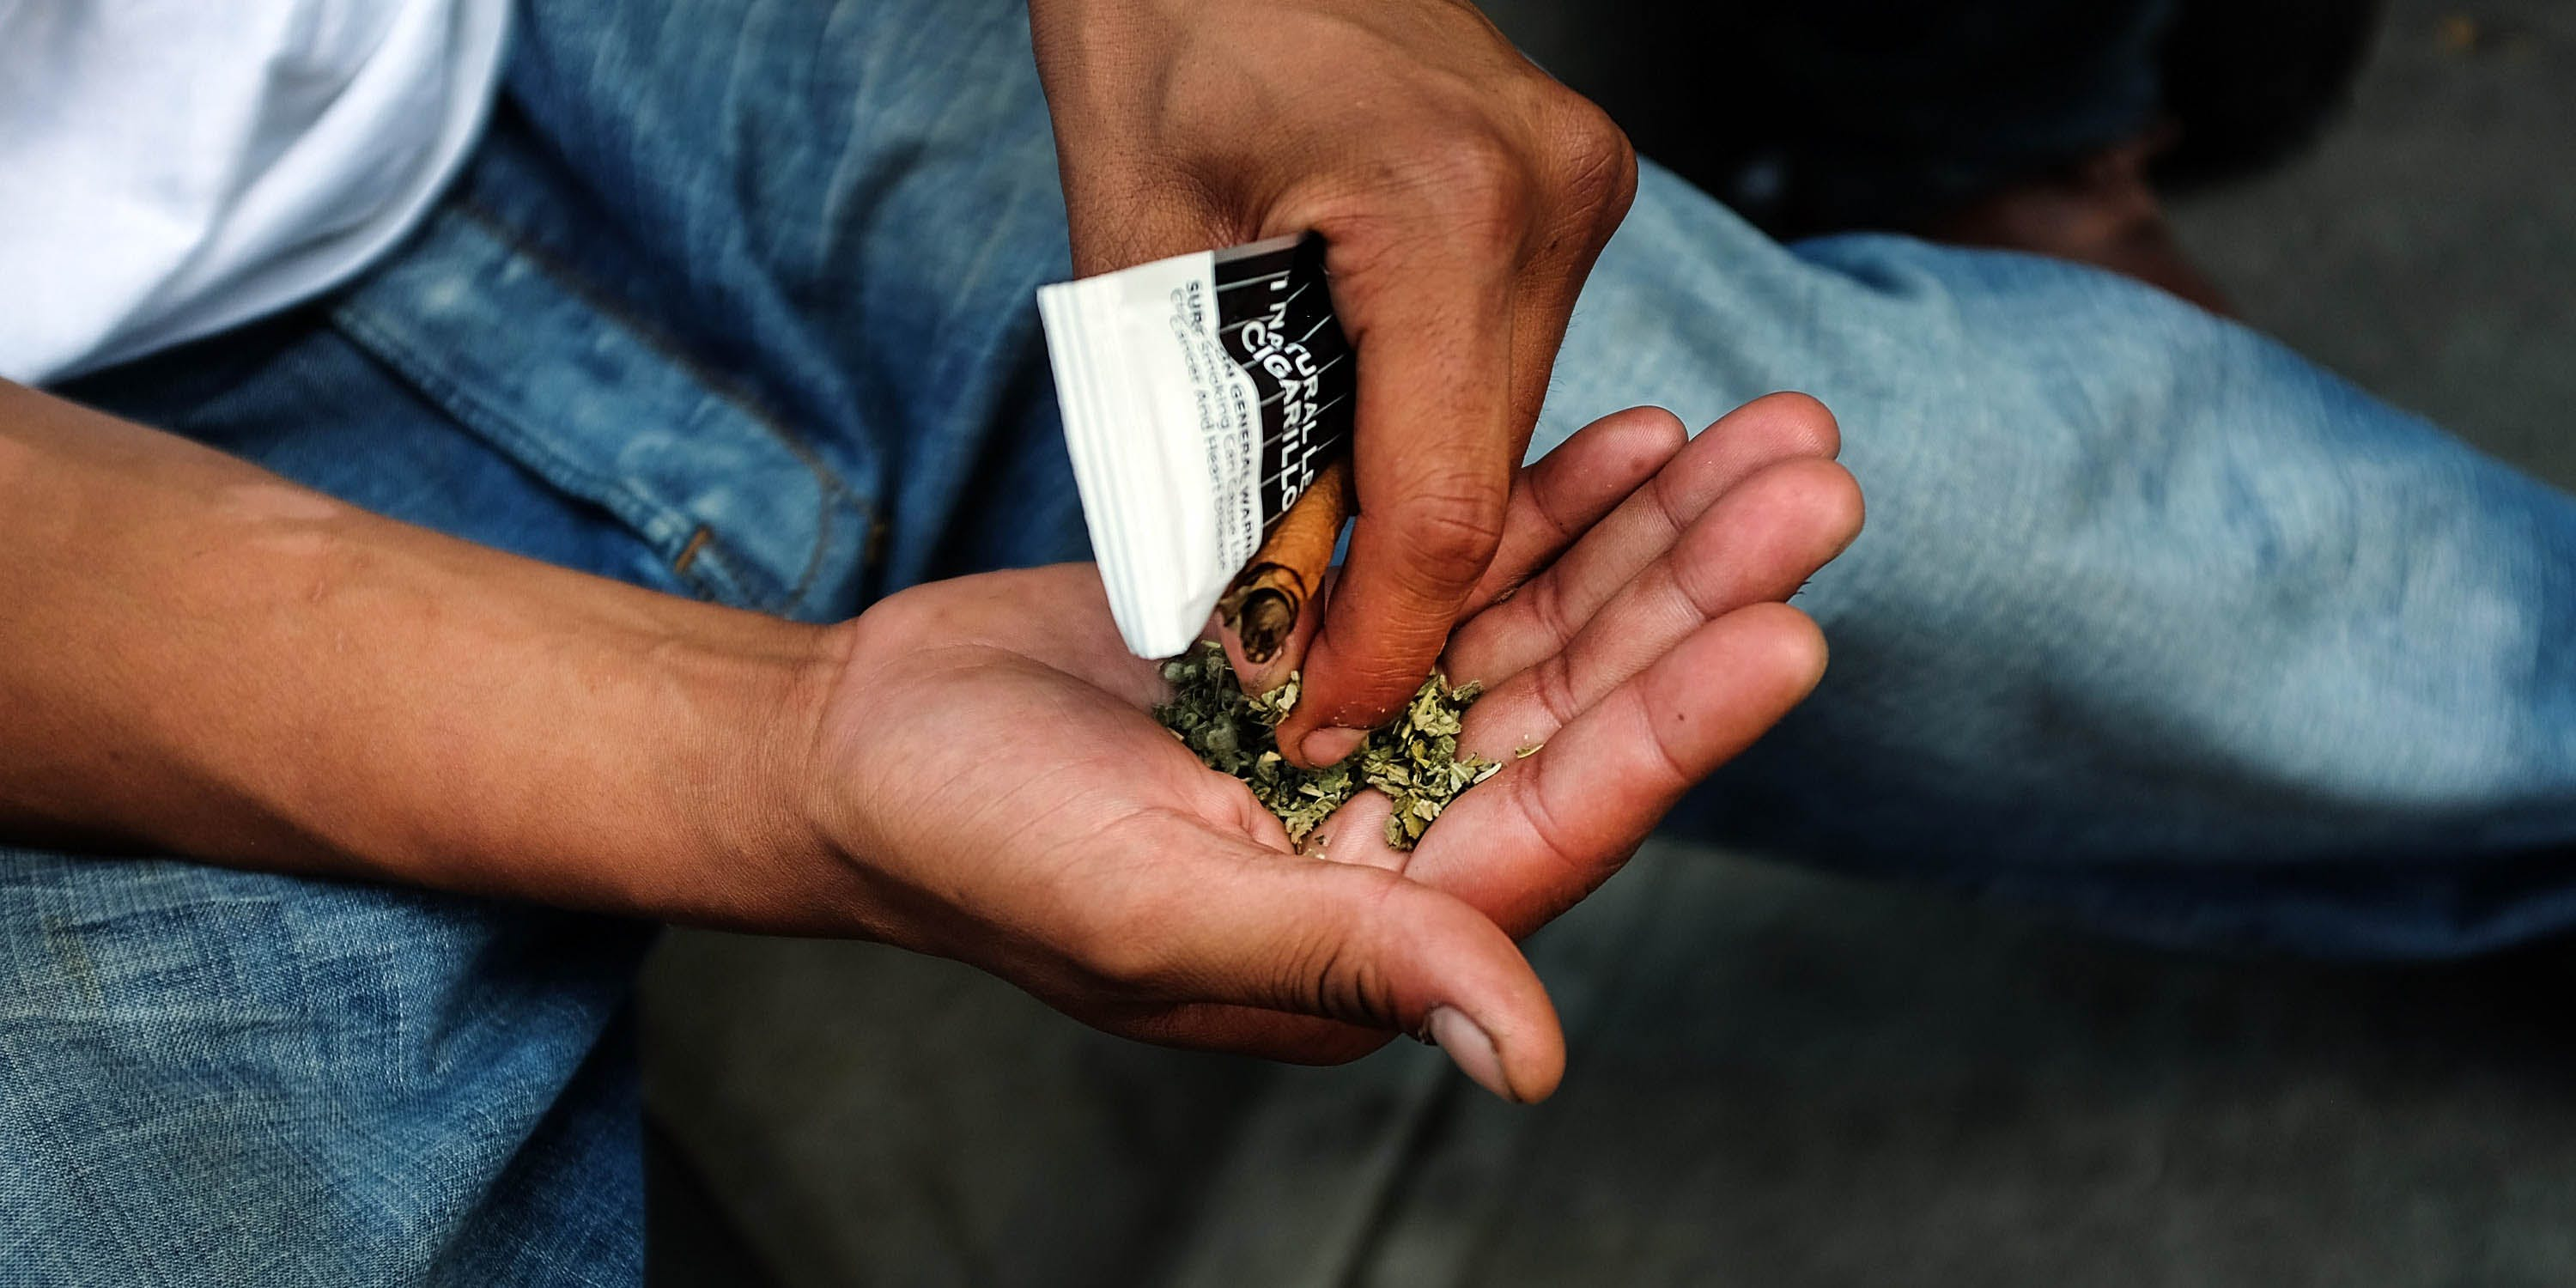 A man prepares to smoke synthetic cannabis in New York. In Wisconsin, however, the law is cracking down on anyone selling the dangerous substance.